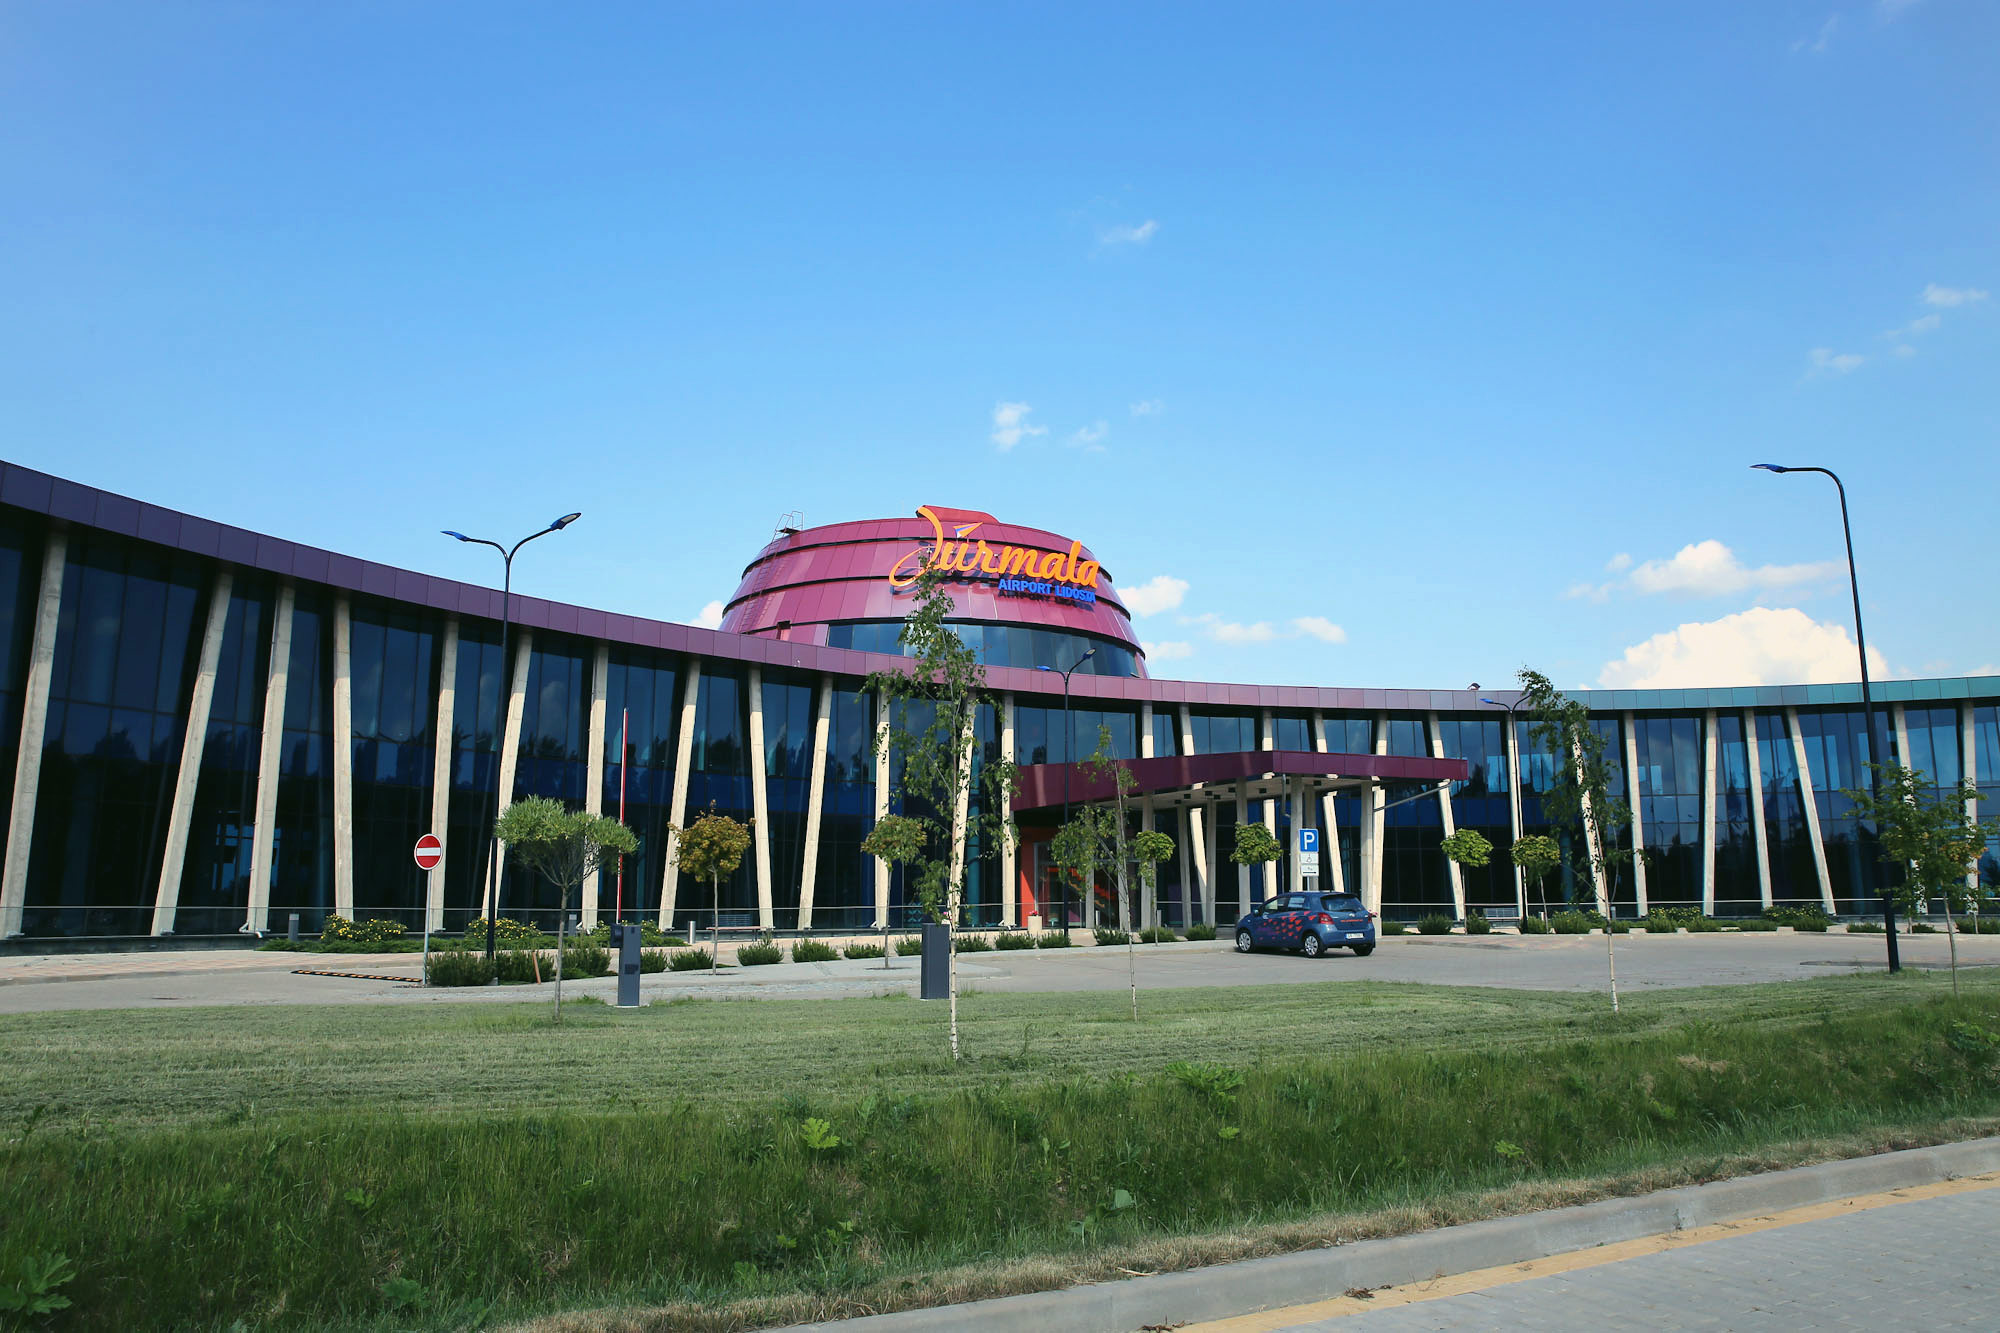 The passenger terminal of the airport and Jurmala